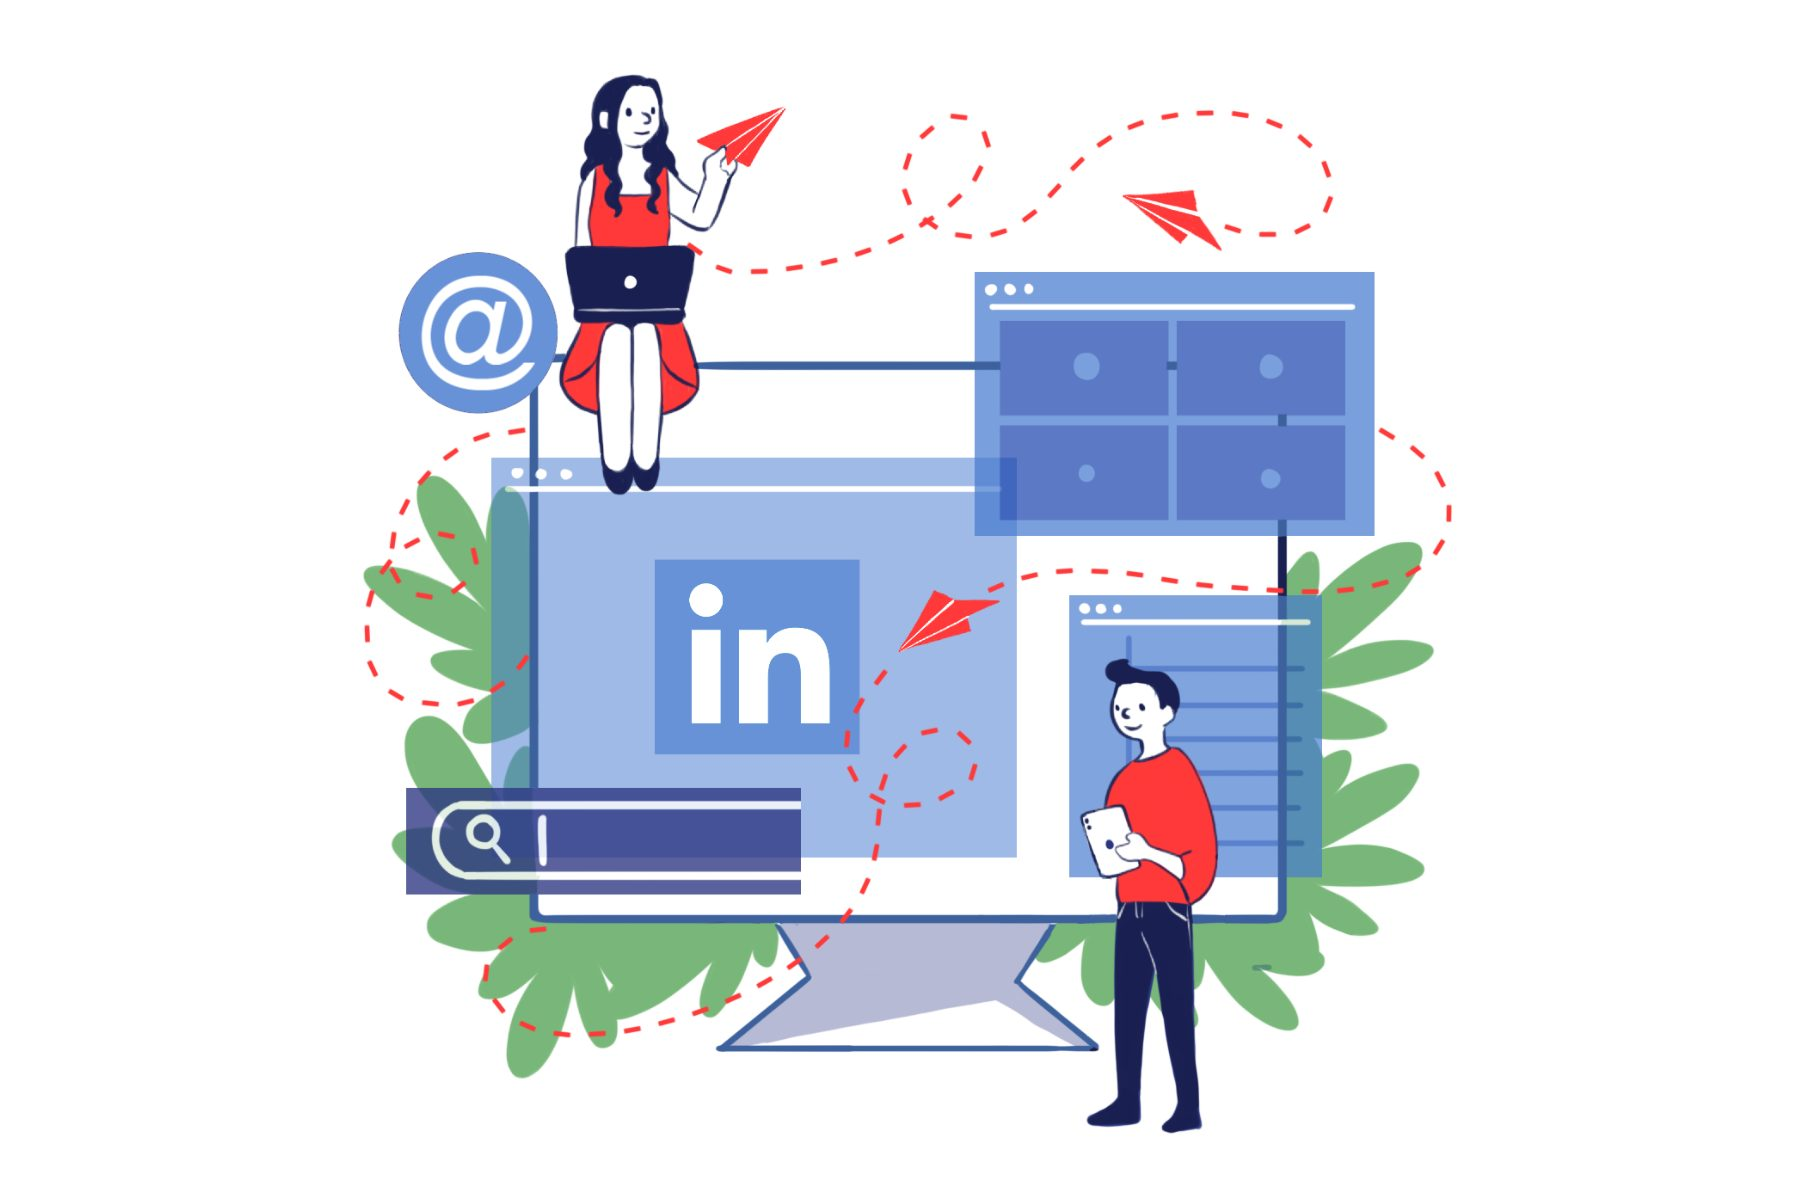 LinkedIn. (Illustration by Eri Iguchi, Minneapolis College of Art and Design)